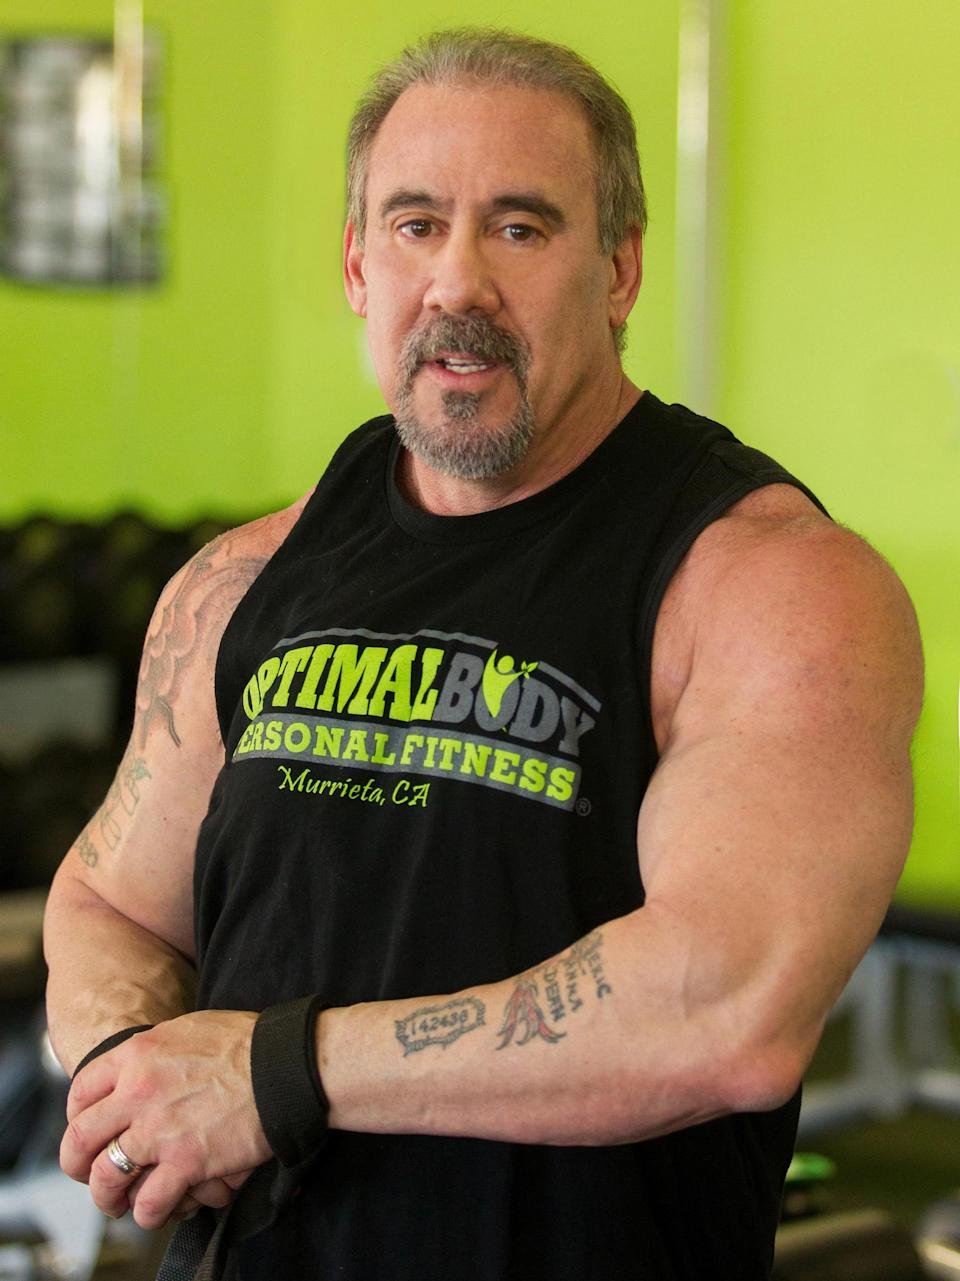 David Lyons is a bodybuilder with MS who says fitness has dramatically helped his symptoms. (Photo: Courtesy of David Lyons)